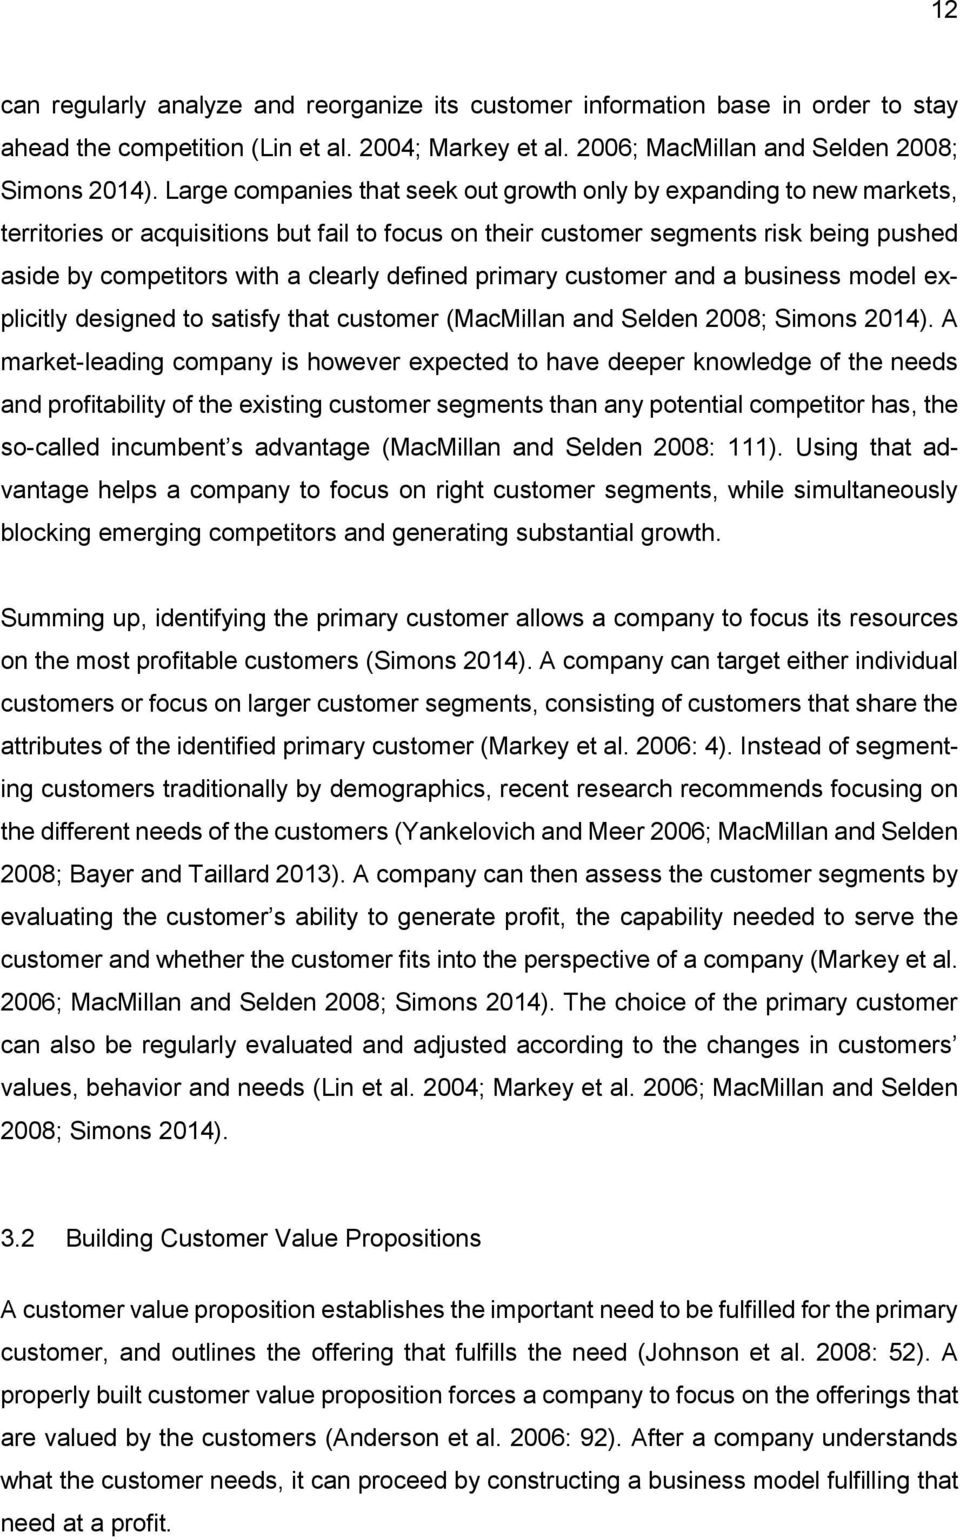 defined primary customer and a business model explicitly designed to satisfy that customer (MacMillan and Selden 2008; Simons 2014).